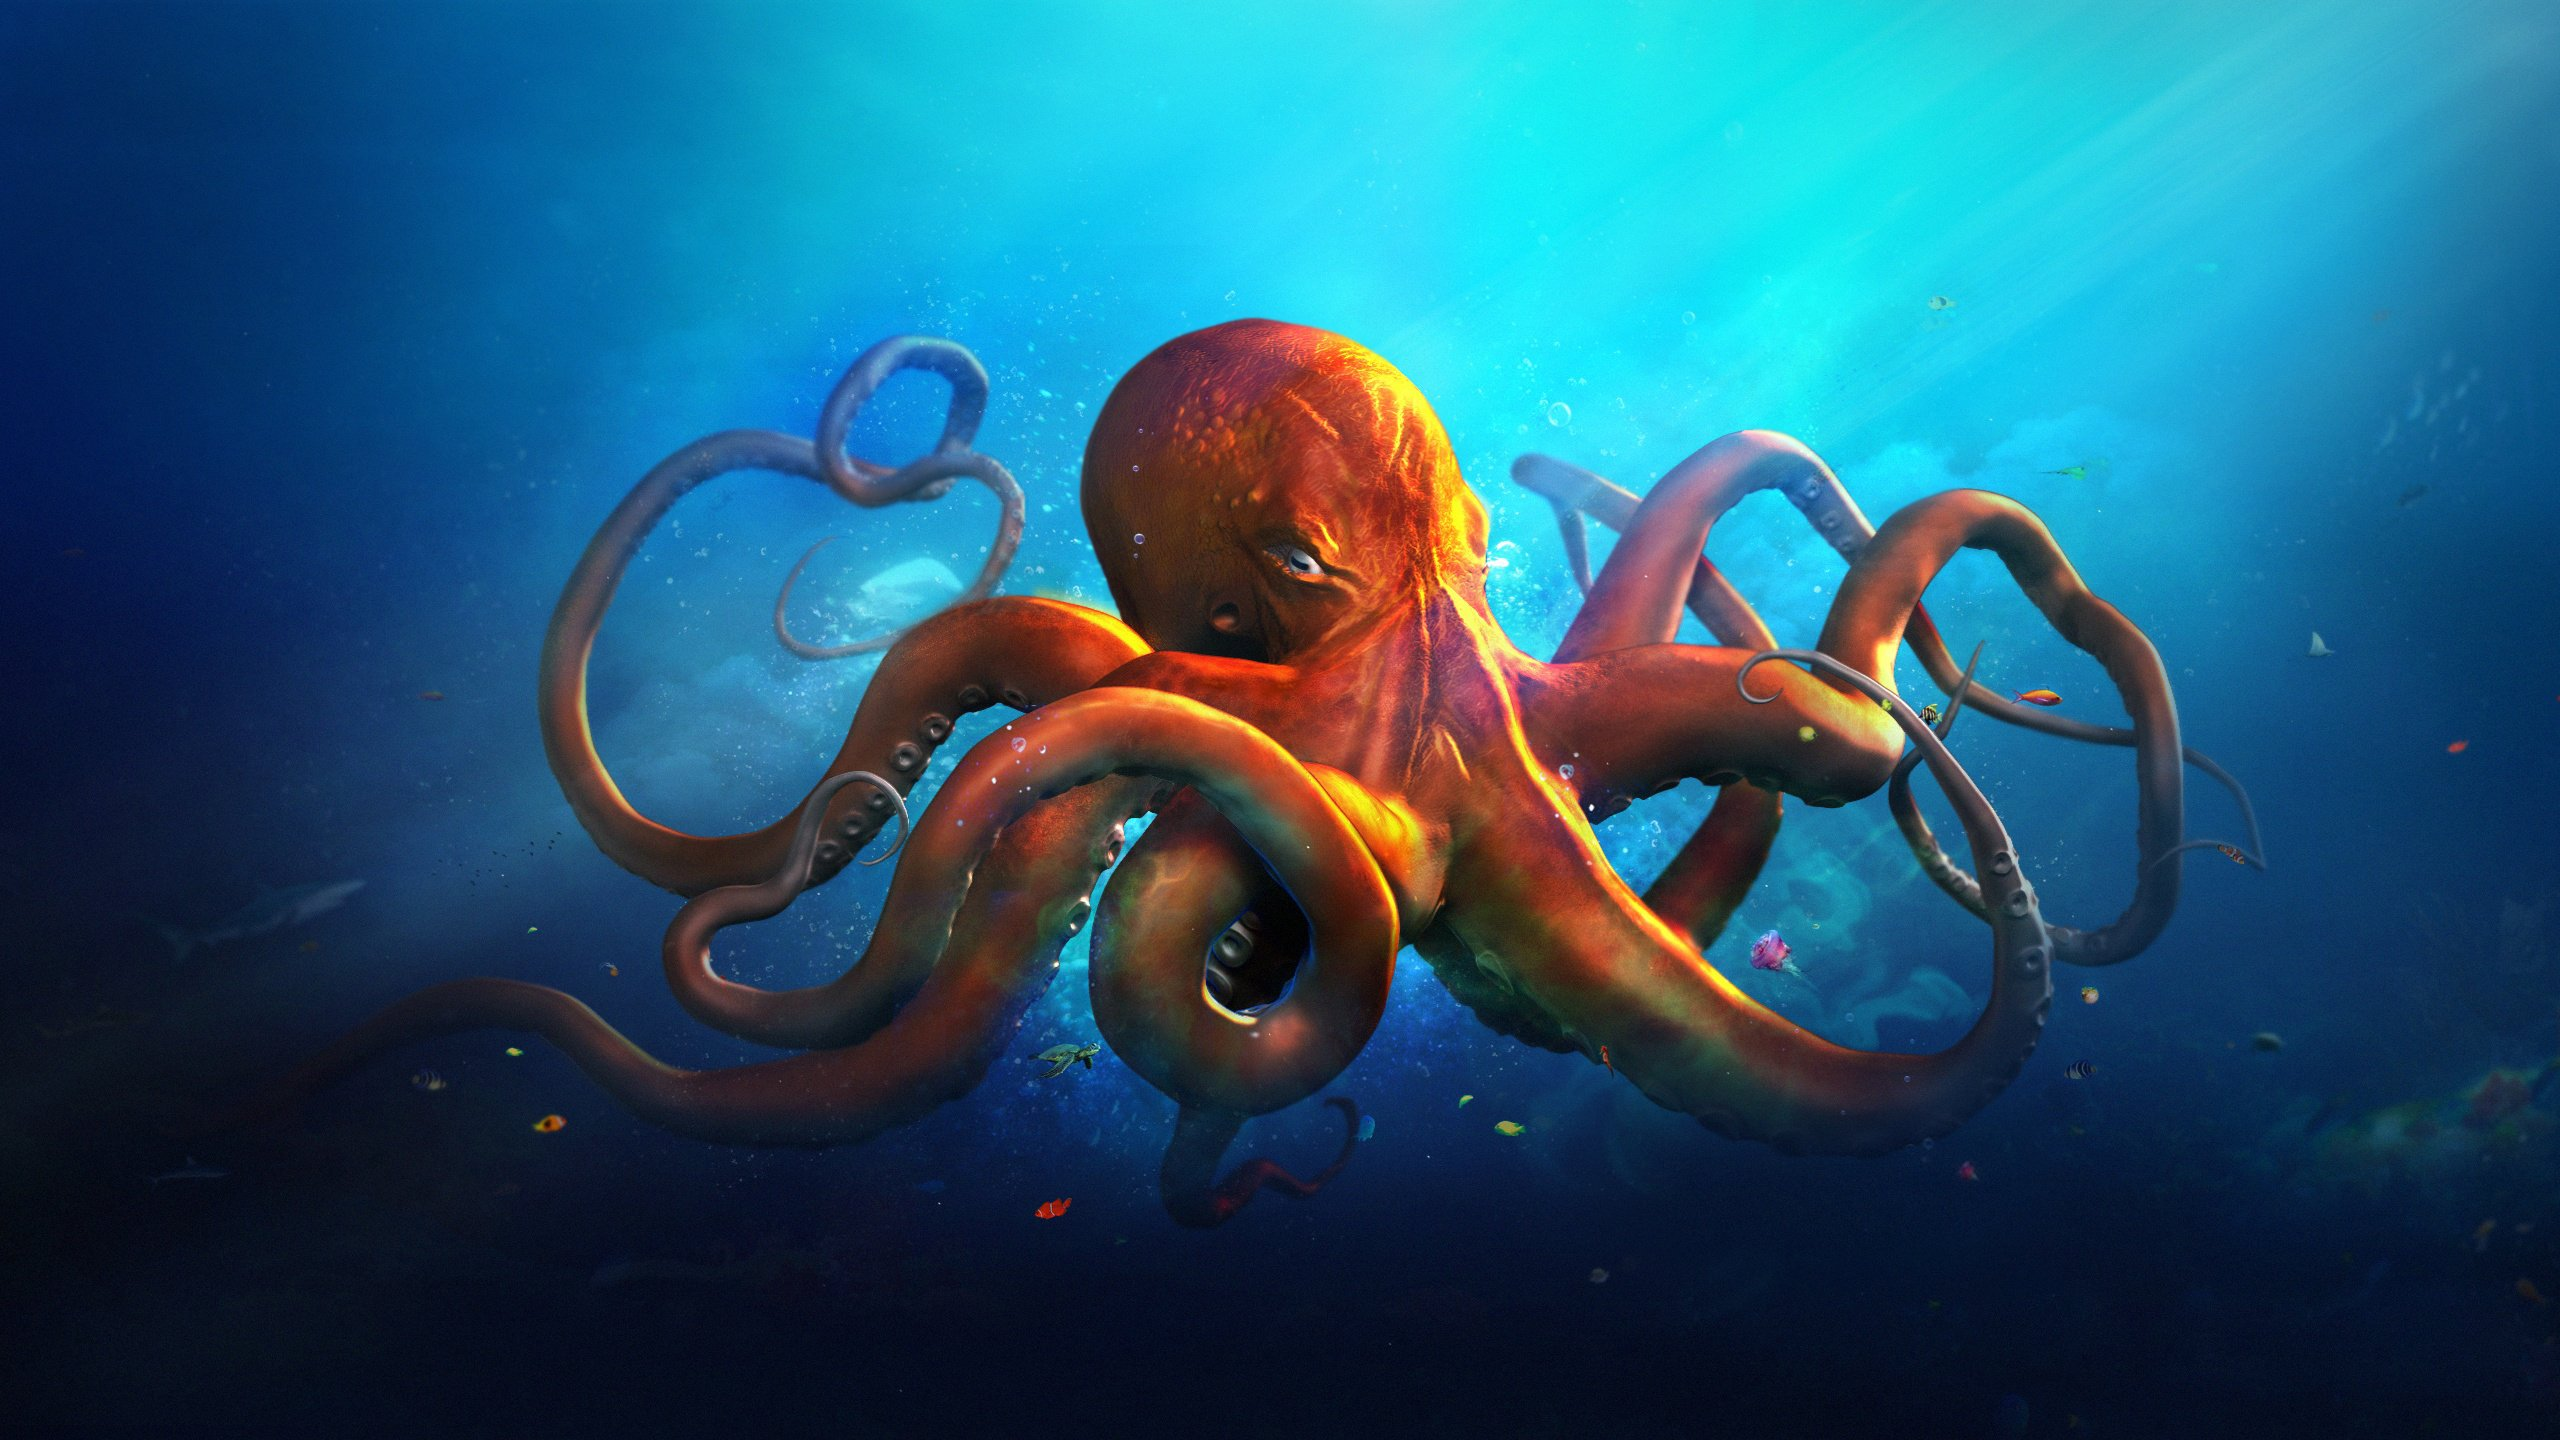 Underwater world Animals octopus ocean sea fantasy artwork 2560x1440